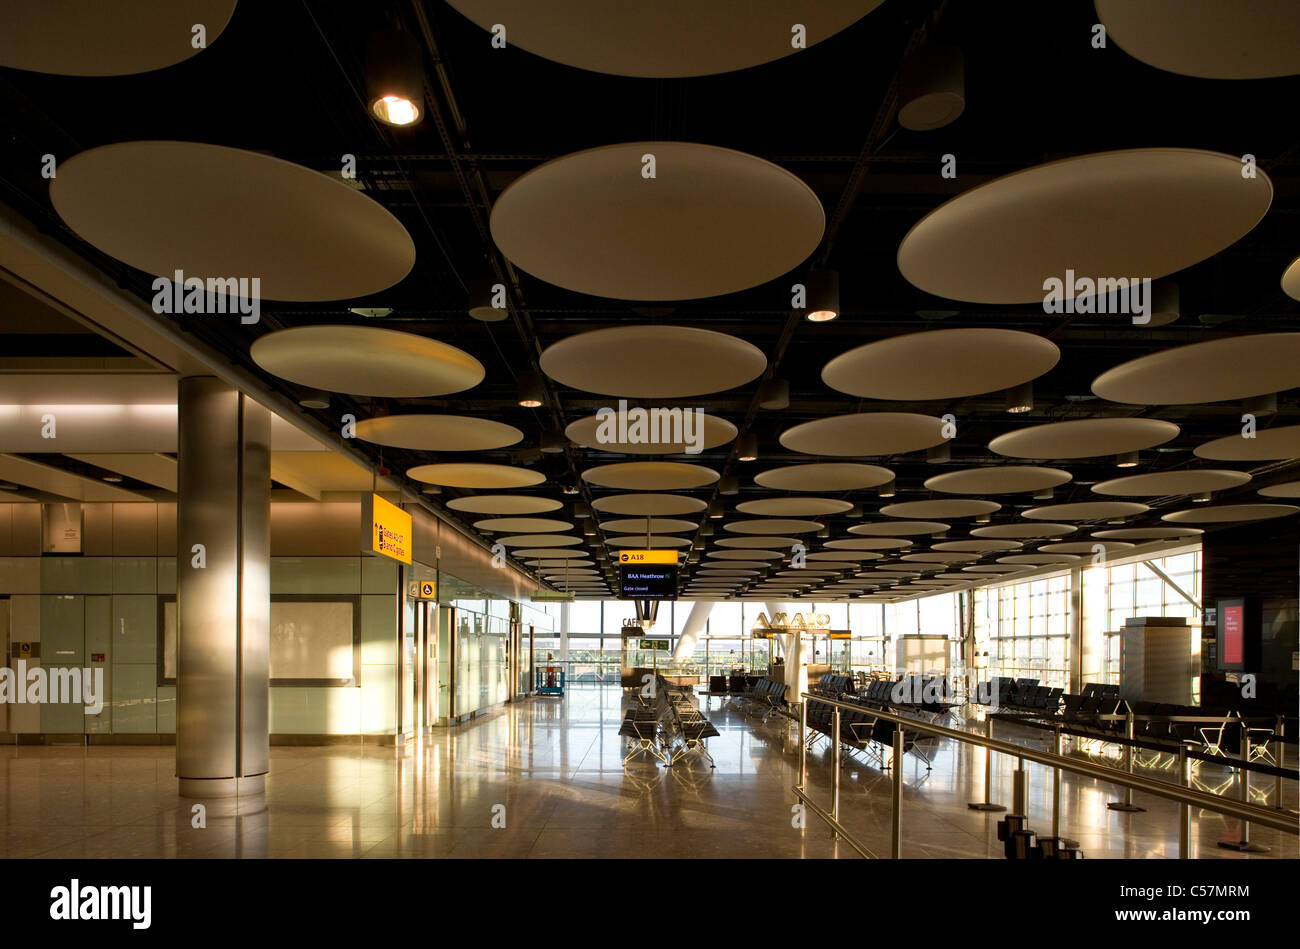 BAA, T5, Terminal 5, Heathrow Airport, London. - Stock Image